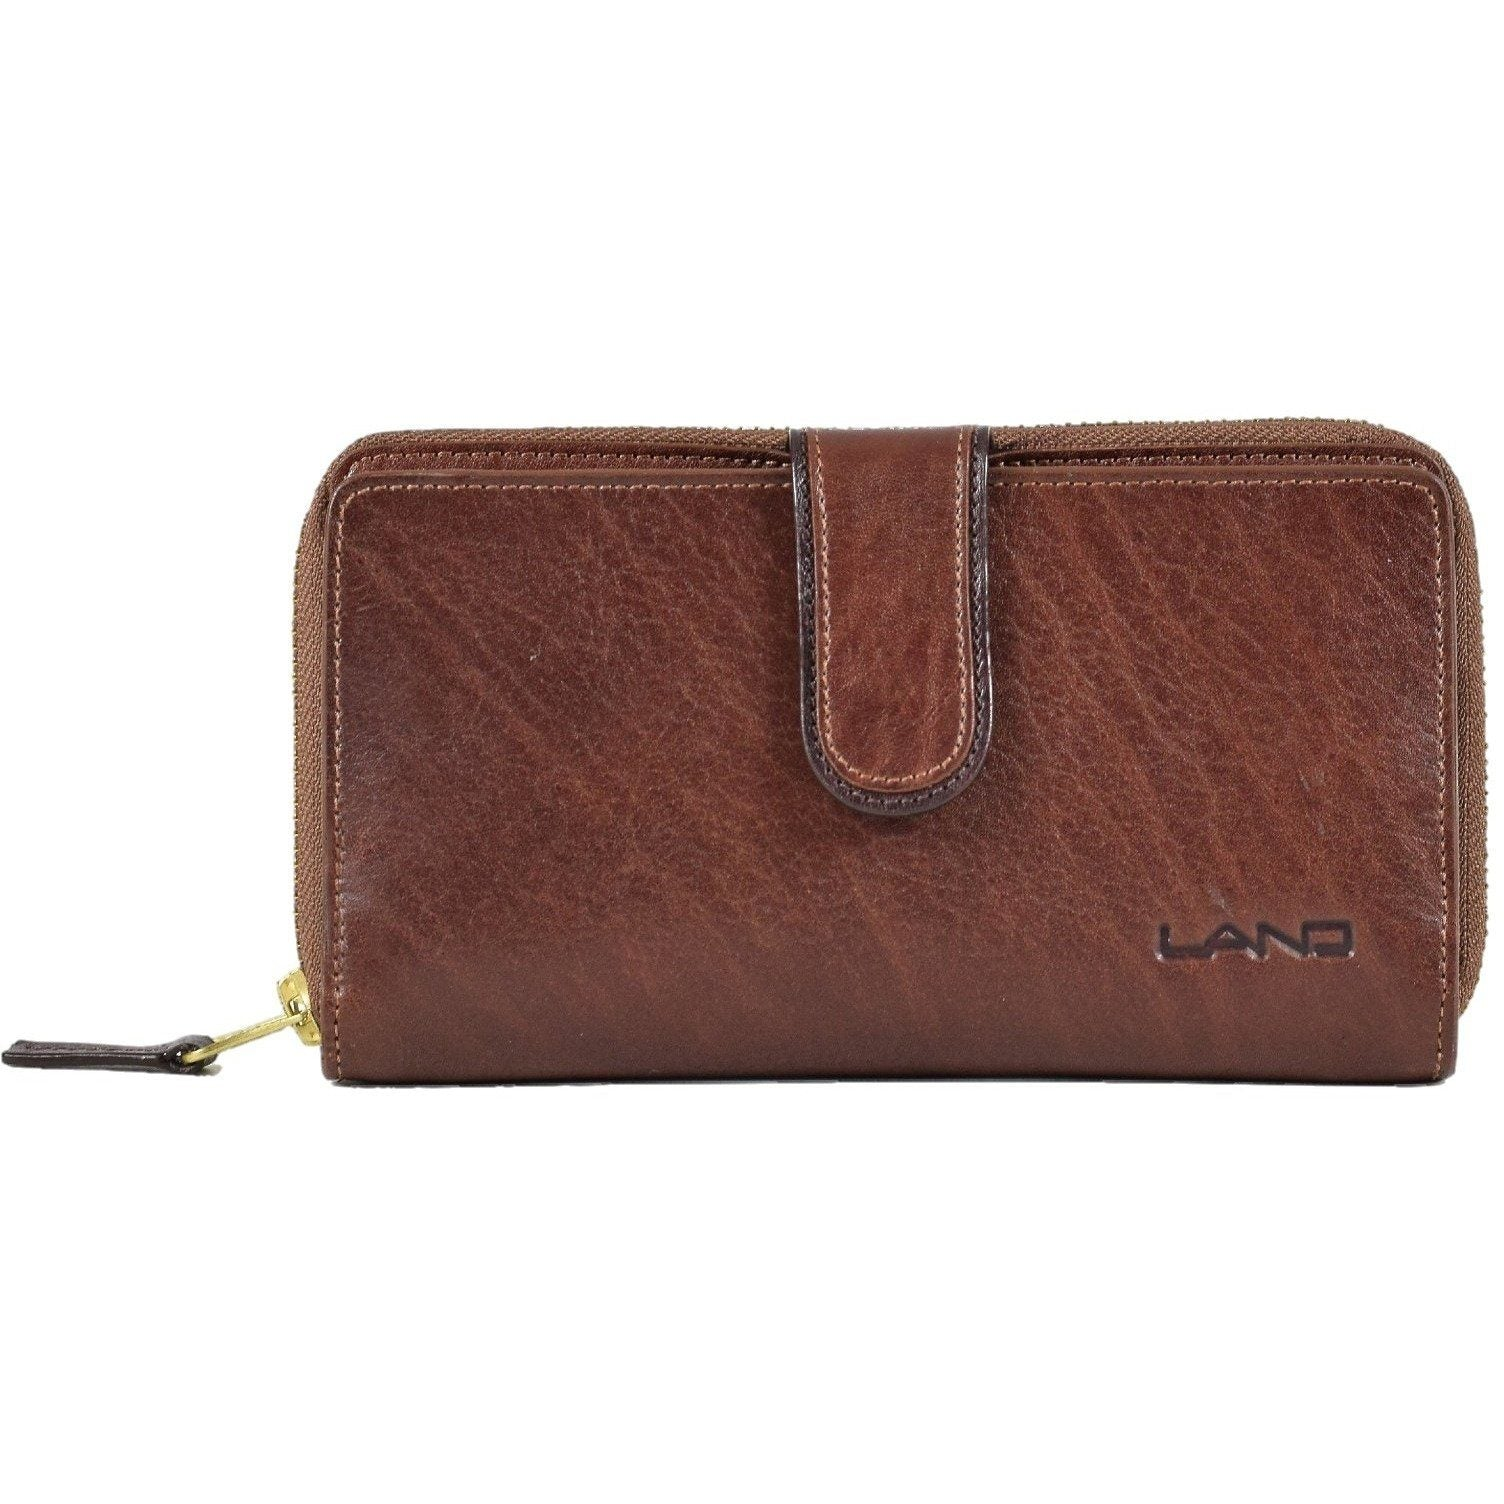 Limited Melissa Zip Around, Wallet | LAND Leather